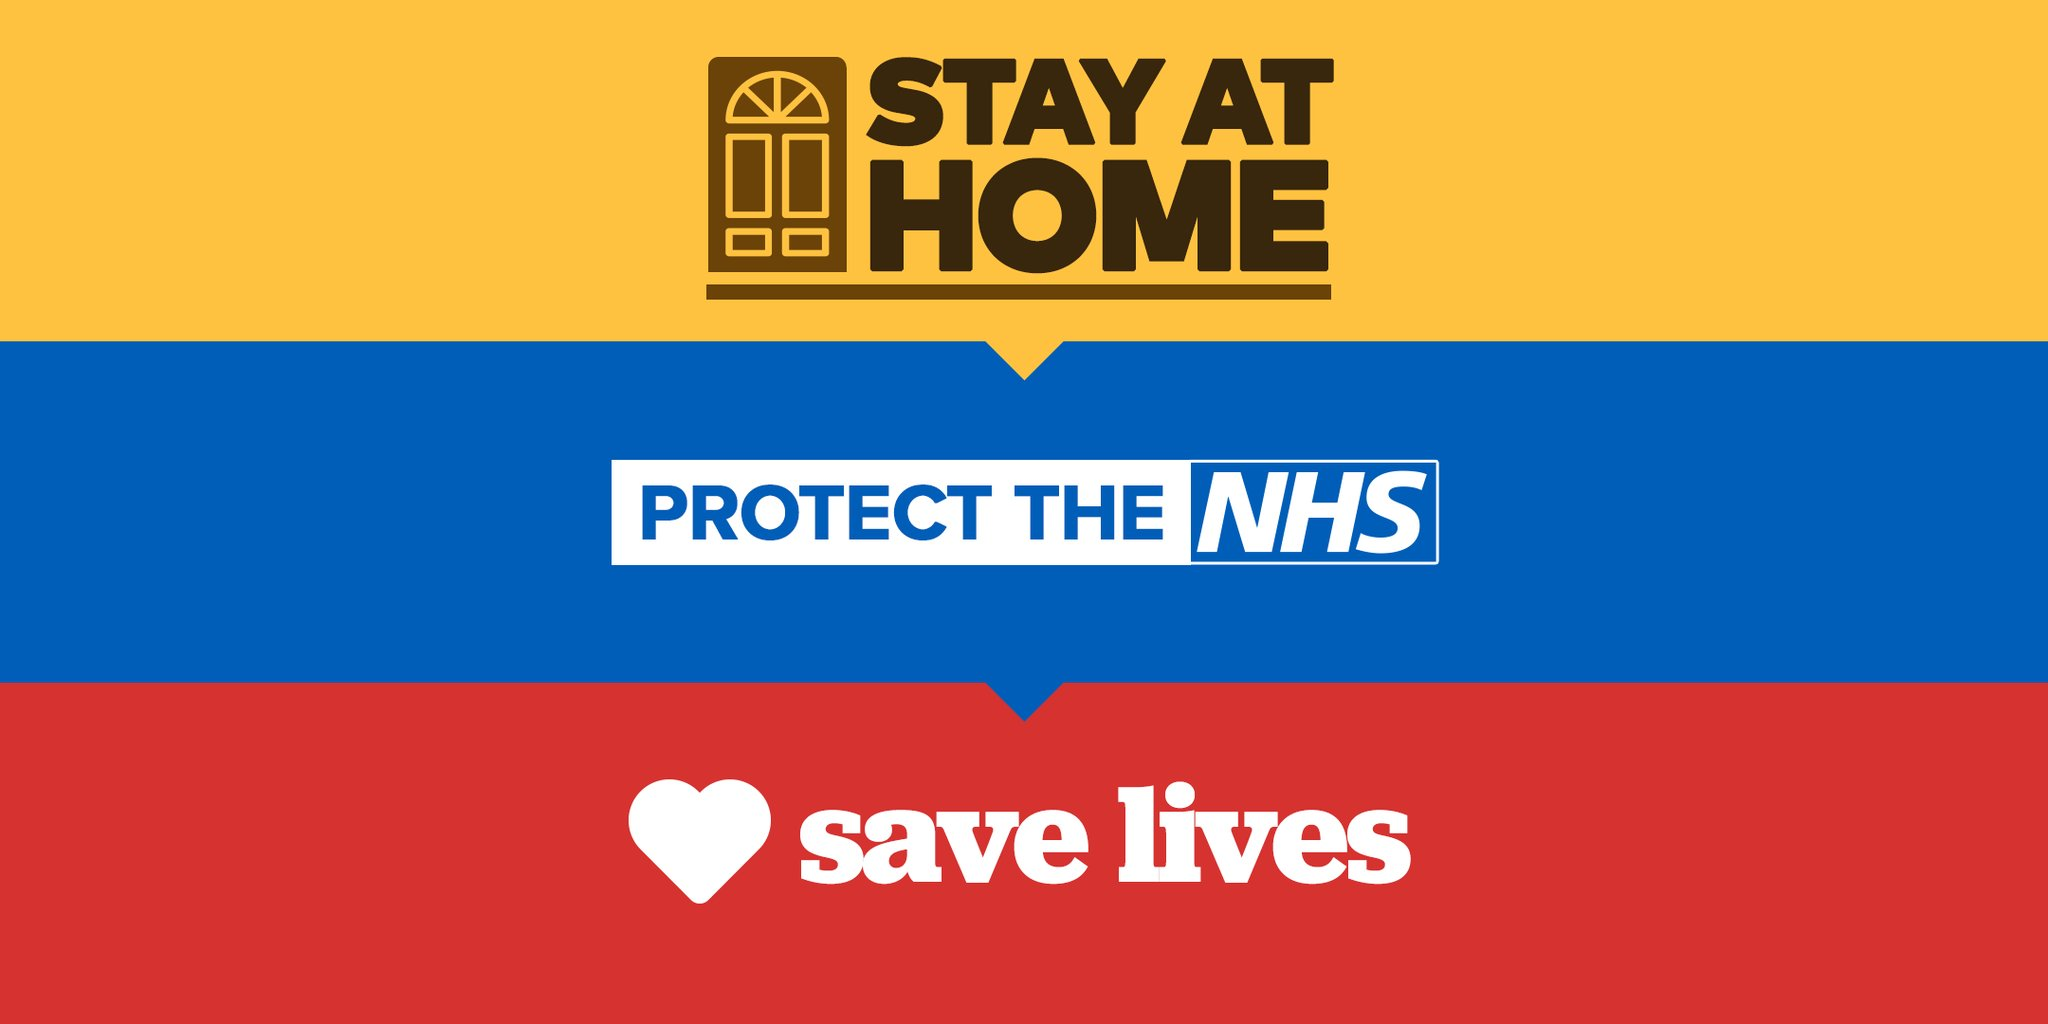 Stay home save lives protect the NHS